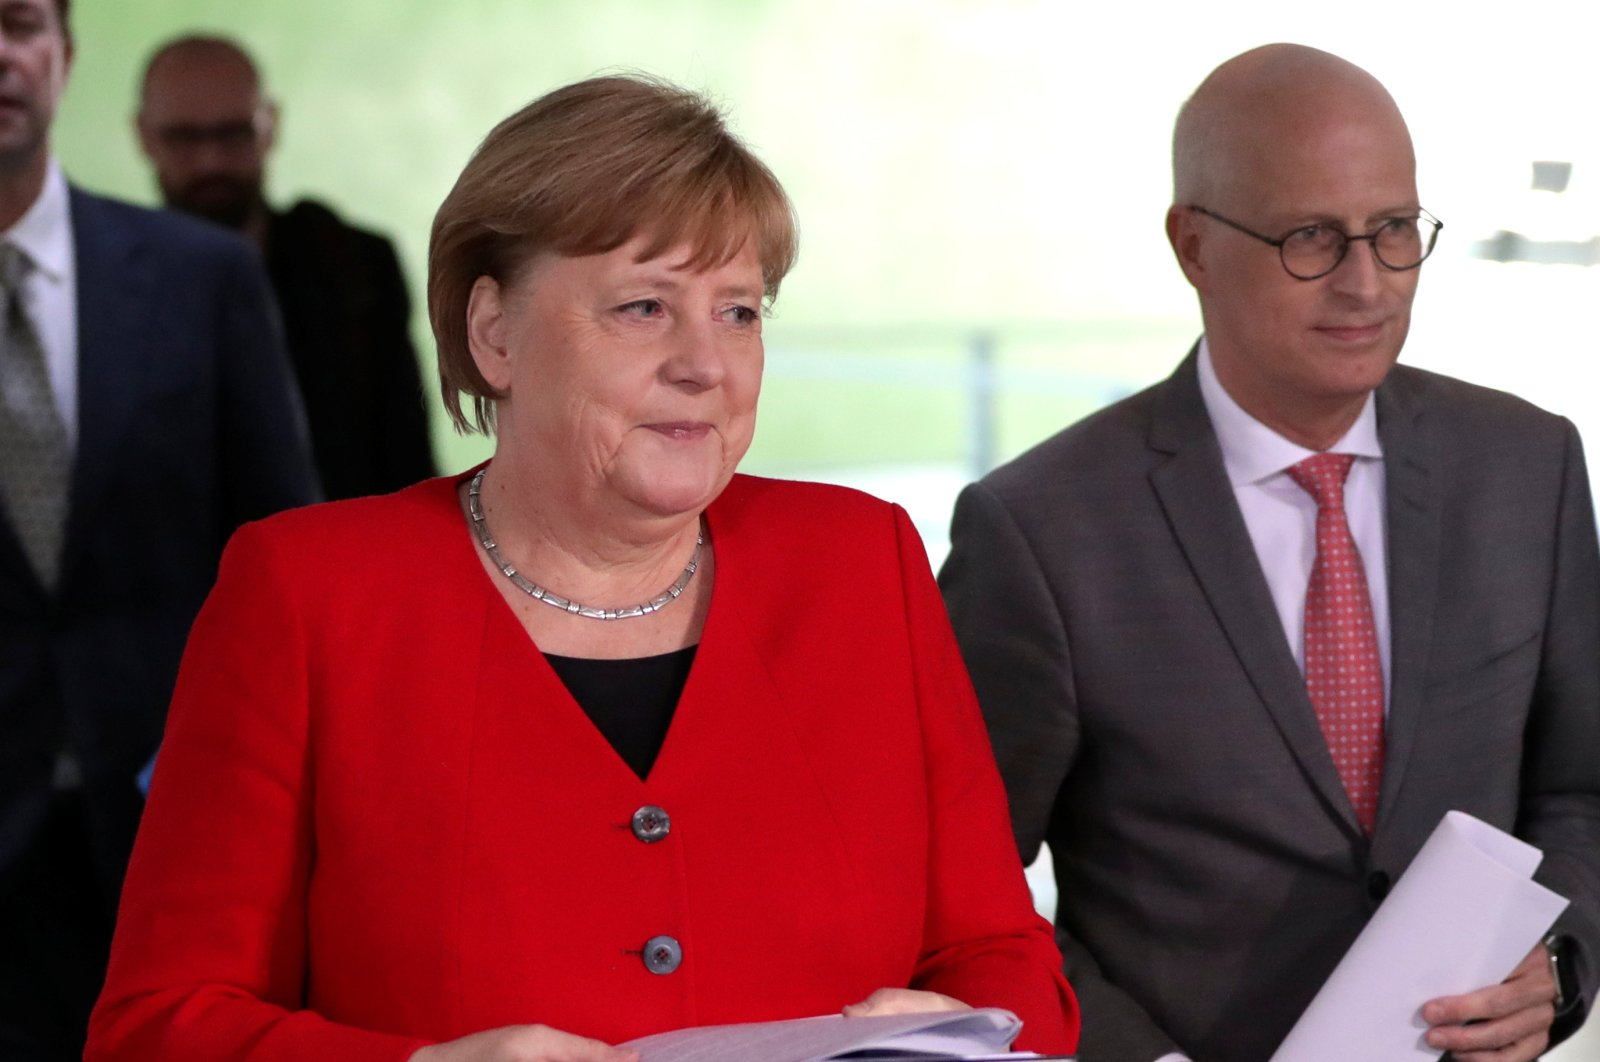 German Chancellor Angela Merkel (L) and Peter Tschentscher, First Mayor of Hamburg, arrive at a news conference after an online meeting with German state governors on the loosening of the restrictions to reduce the spread of the coronavirus disease (COVID-19), Berlin, Germany, May 6, 2020. (Reuters Photo)